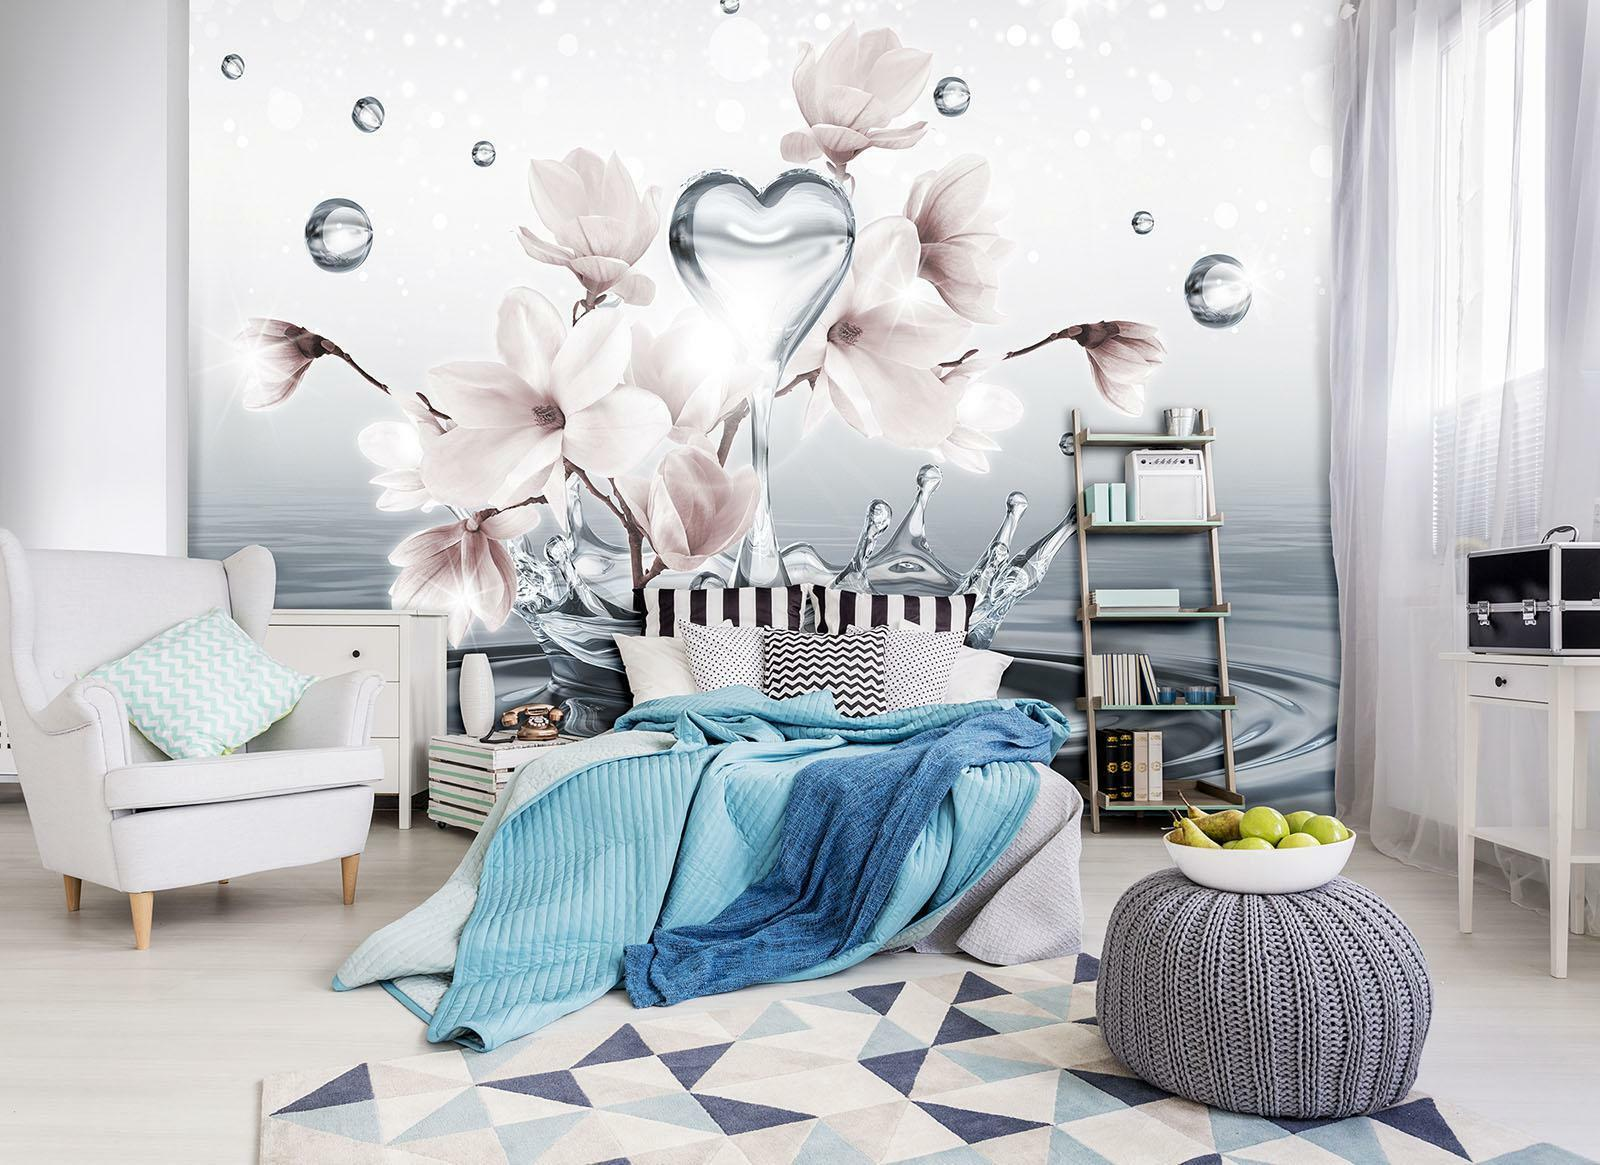 Fototapete Tapete Wandbild Vlies F410163_VEE Photo Wallpaper Mural Magnolie